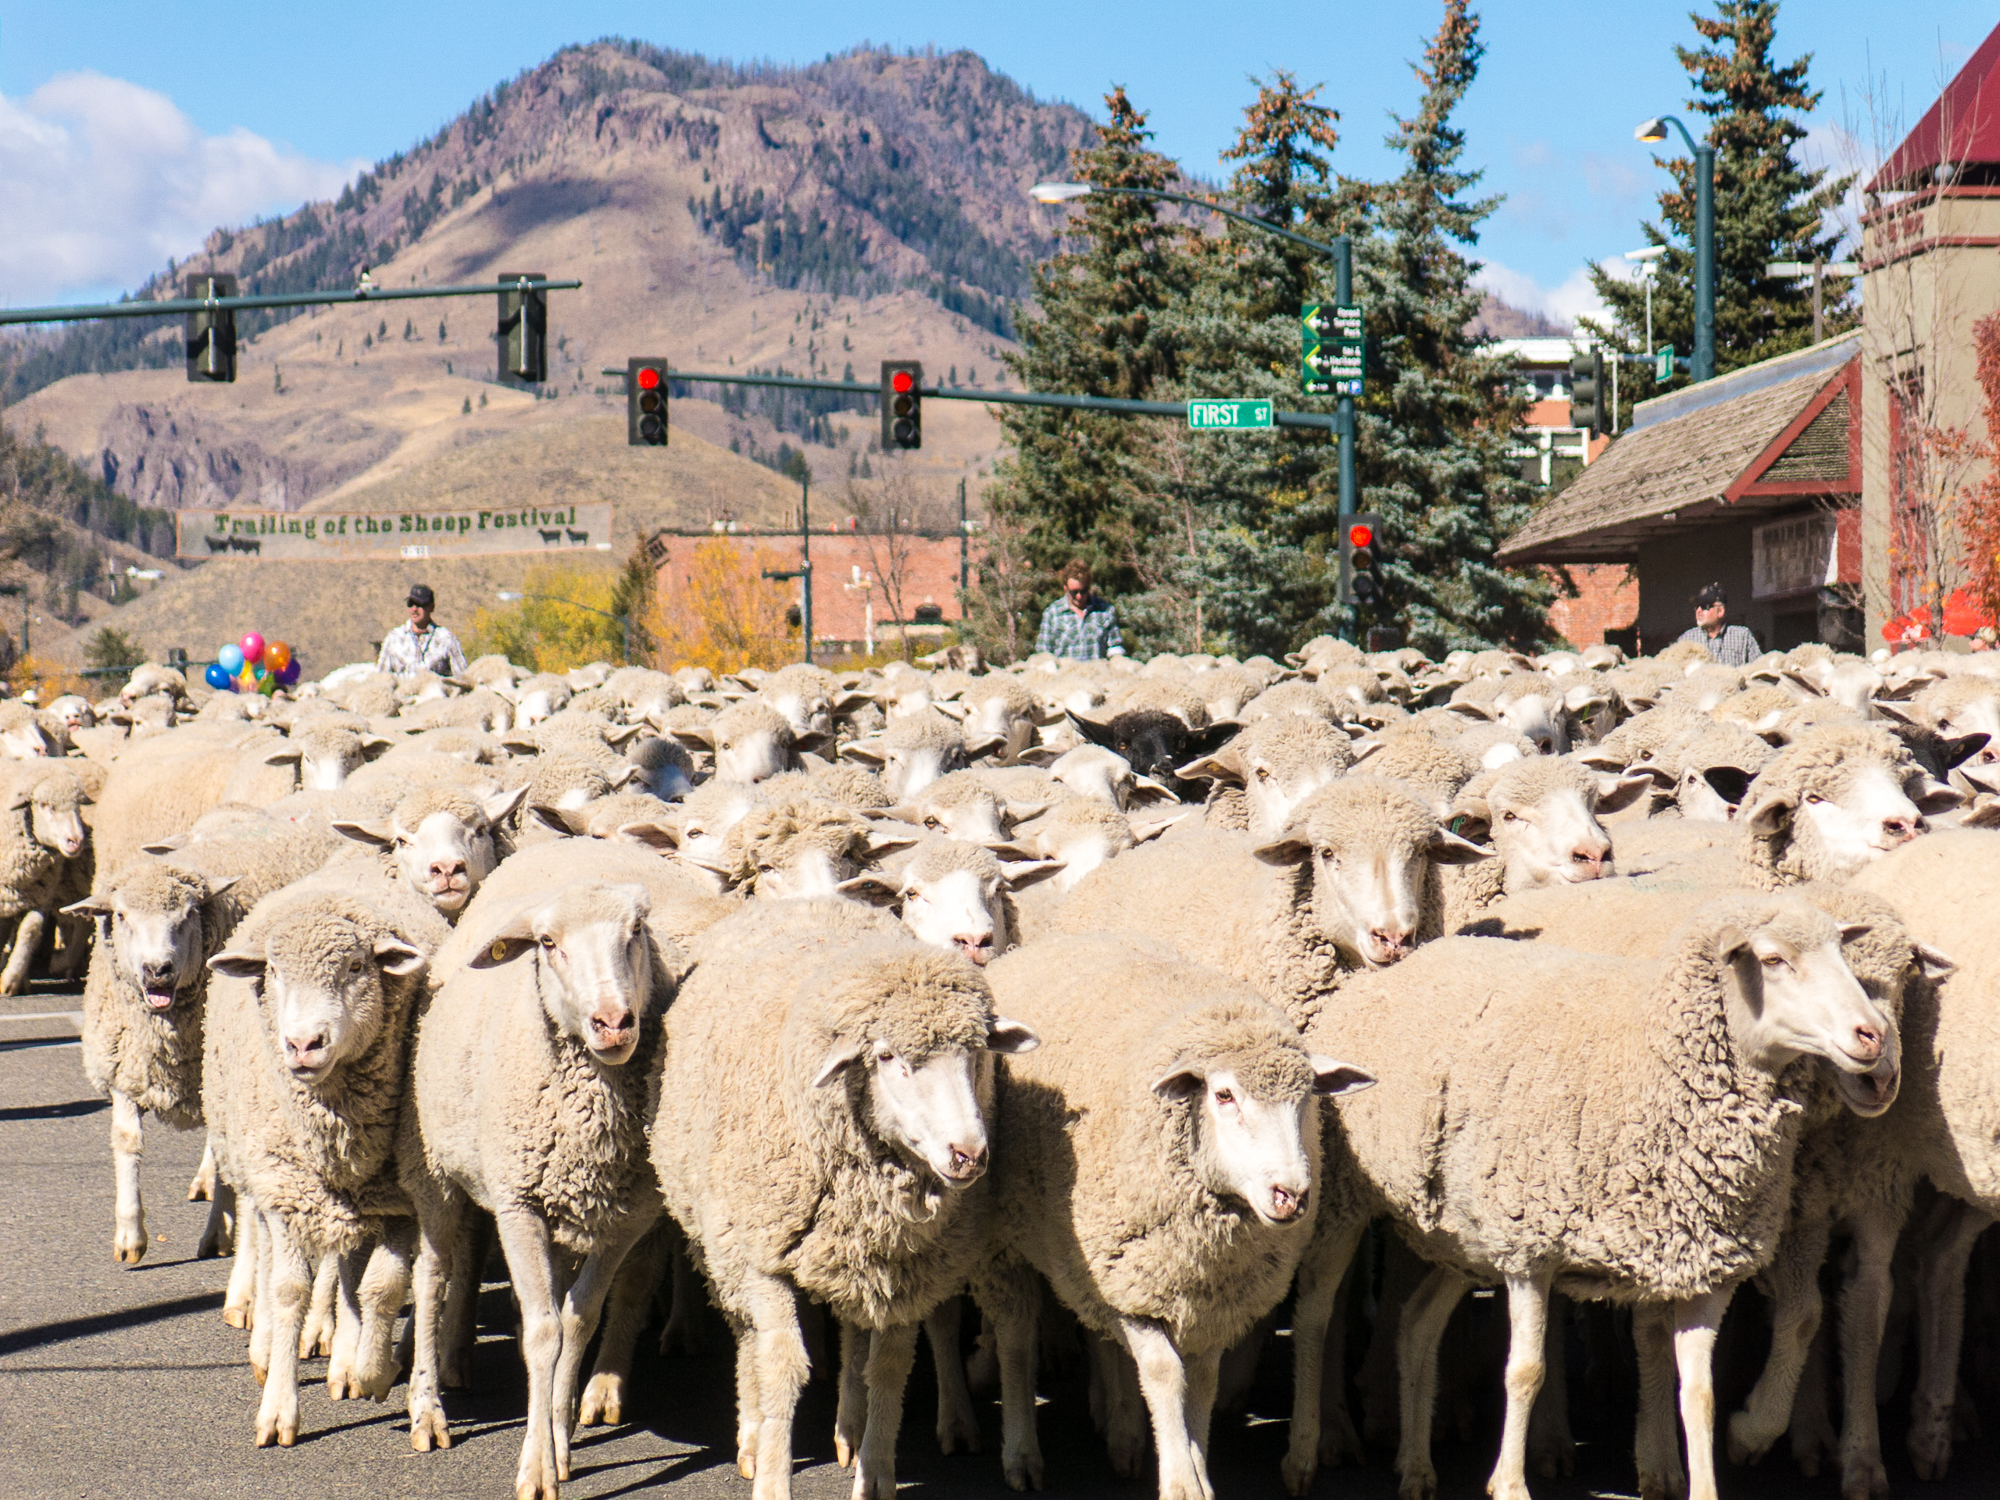 History Of Trailing Of The Sheep Festival